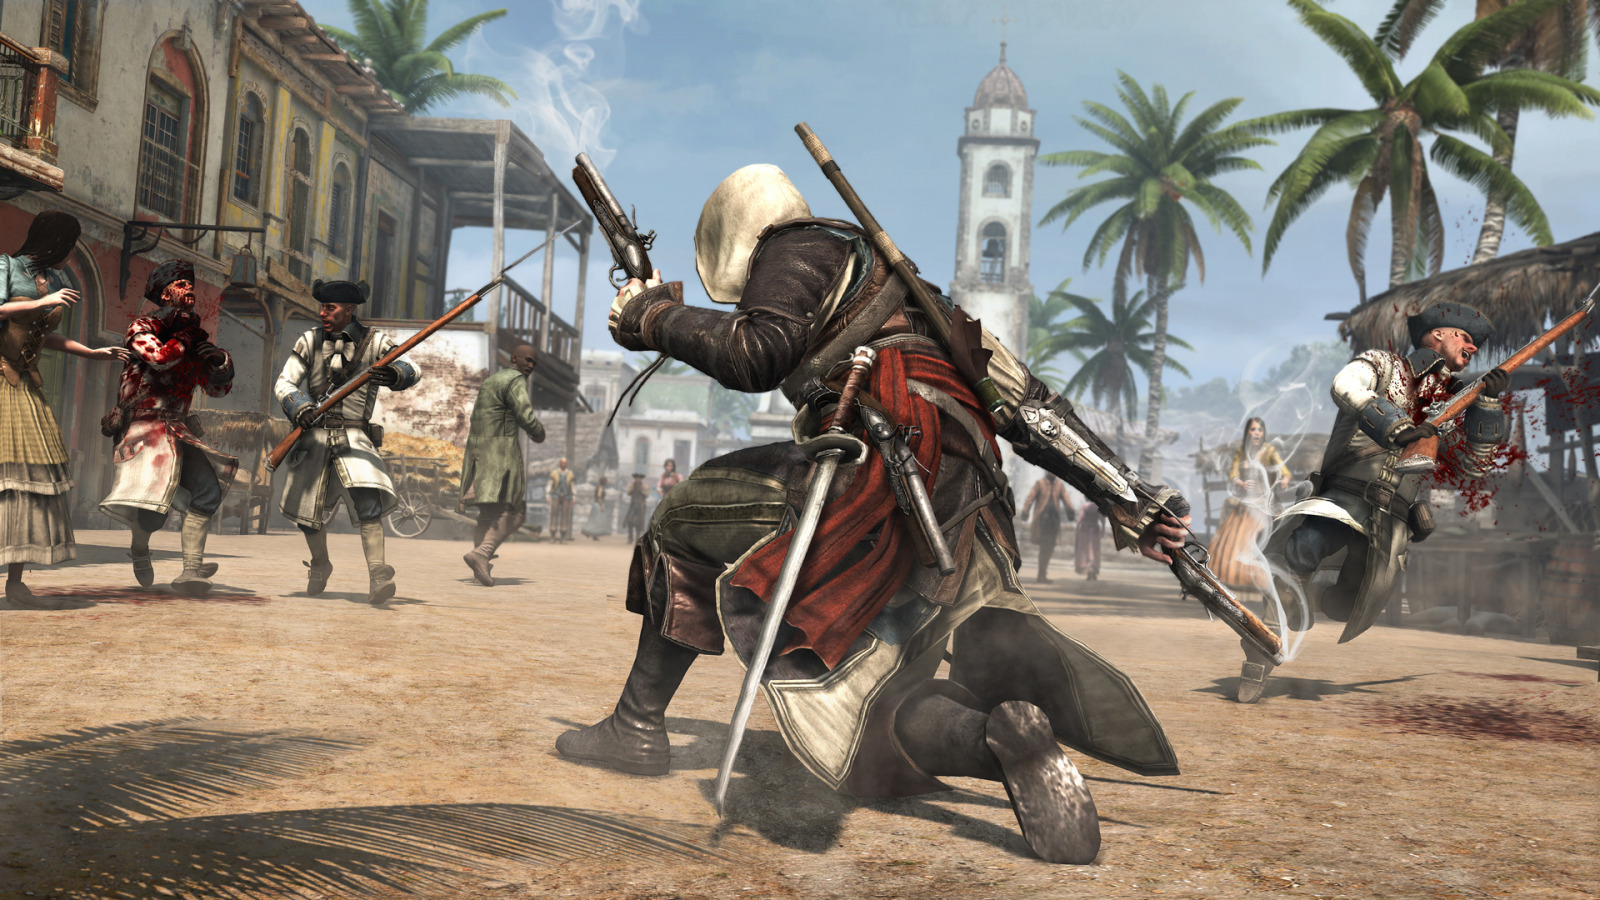 Assassins Creed 3 Free Download PC Game Full Version